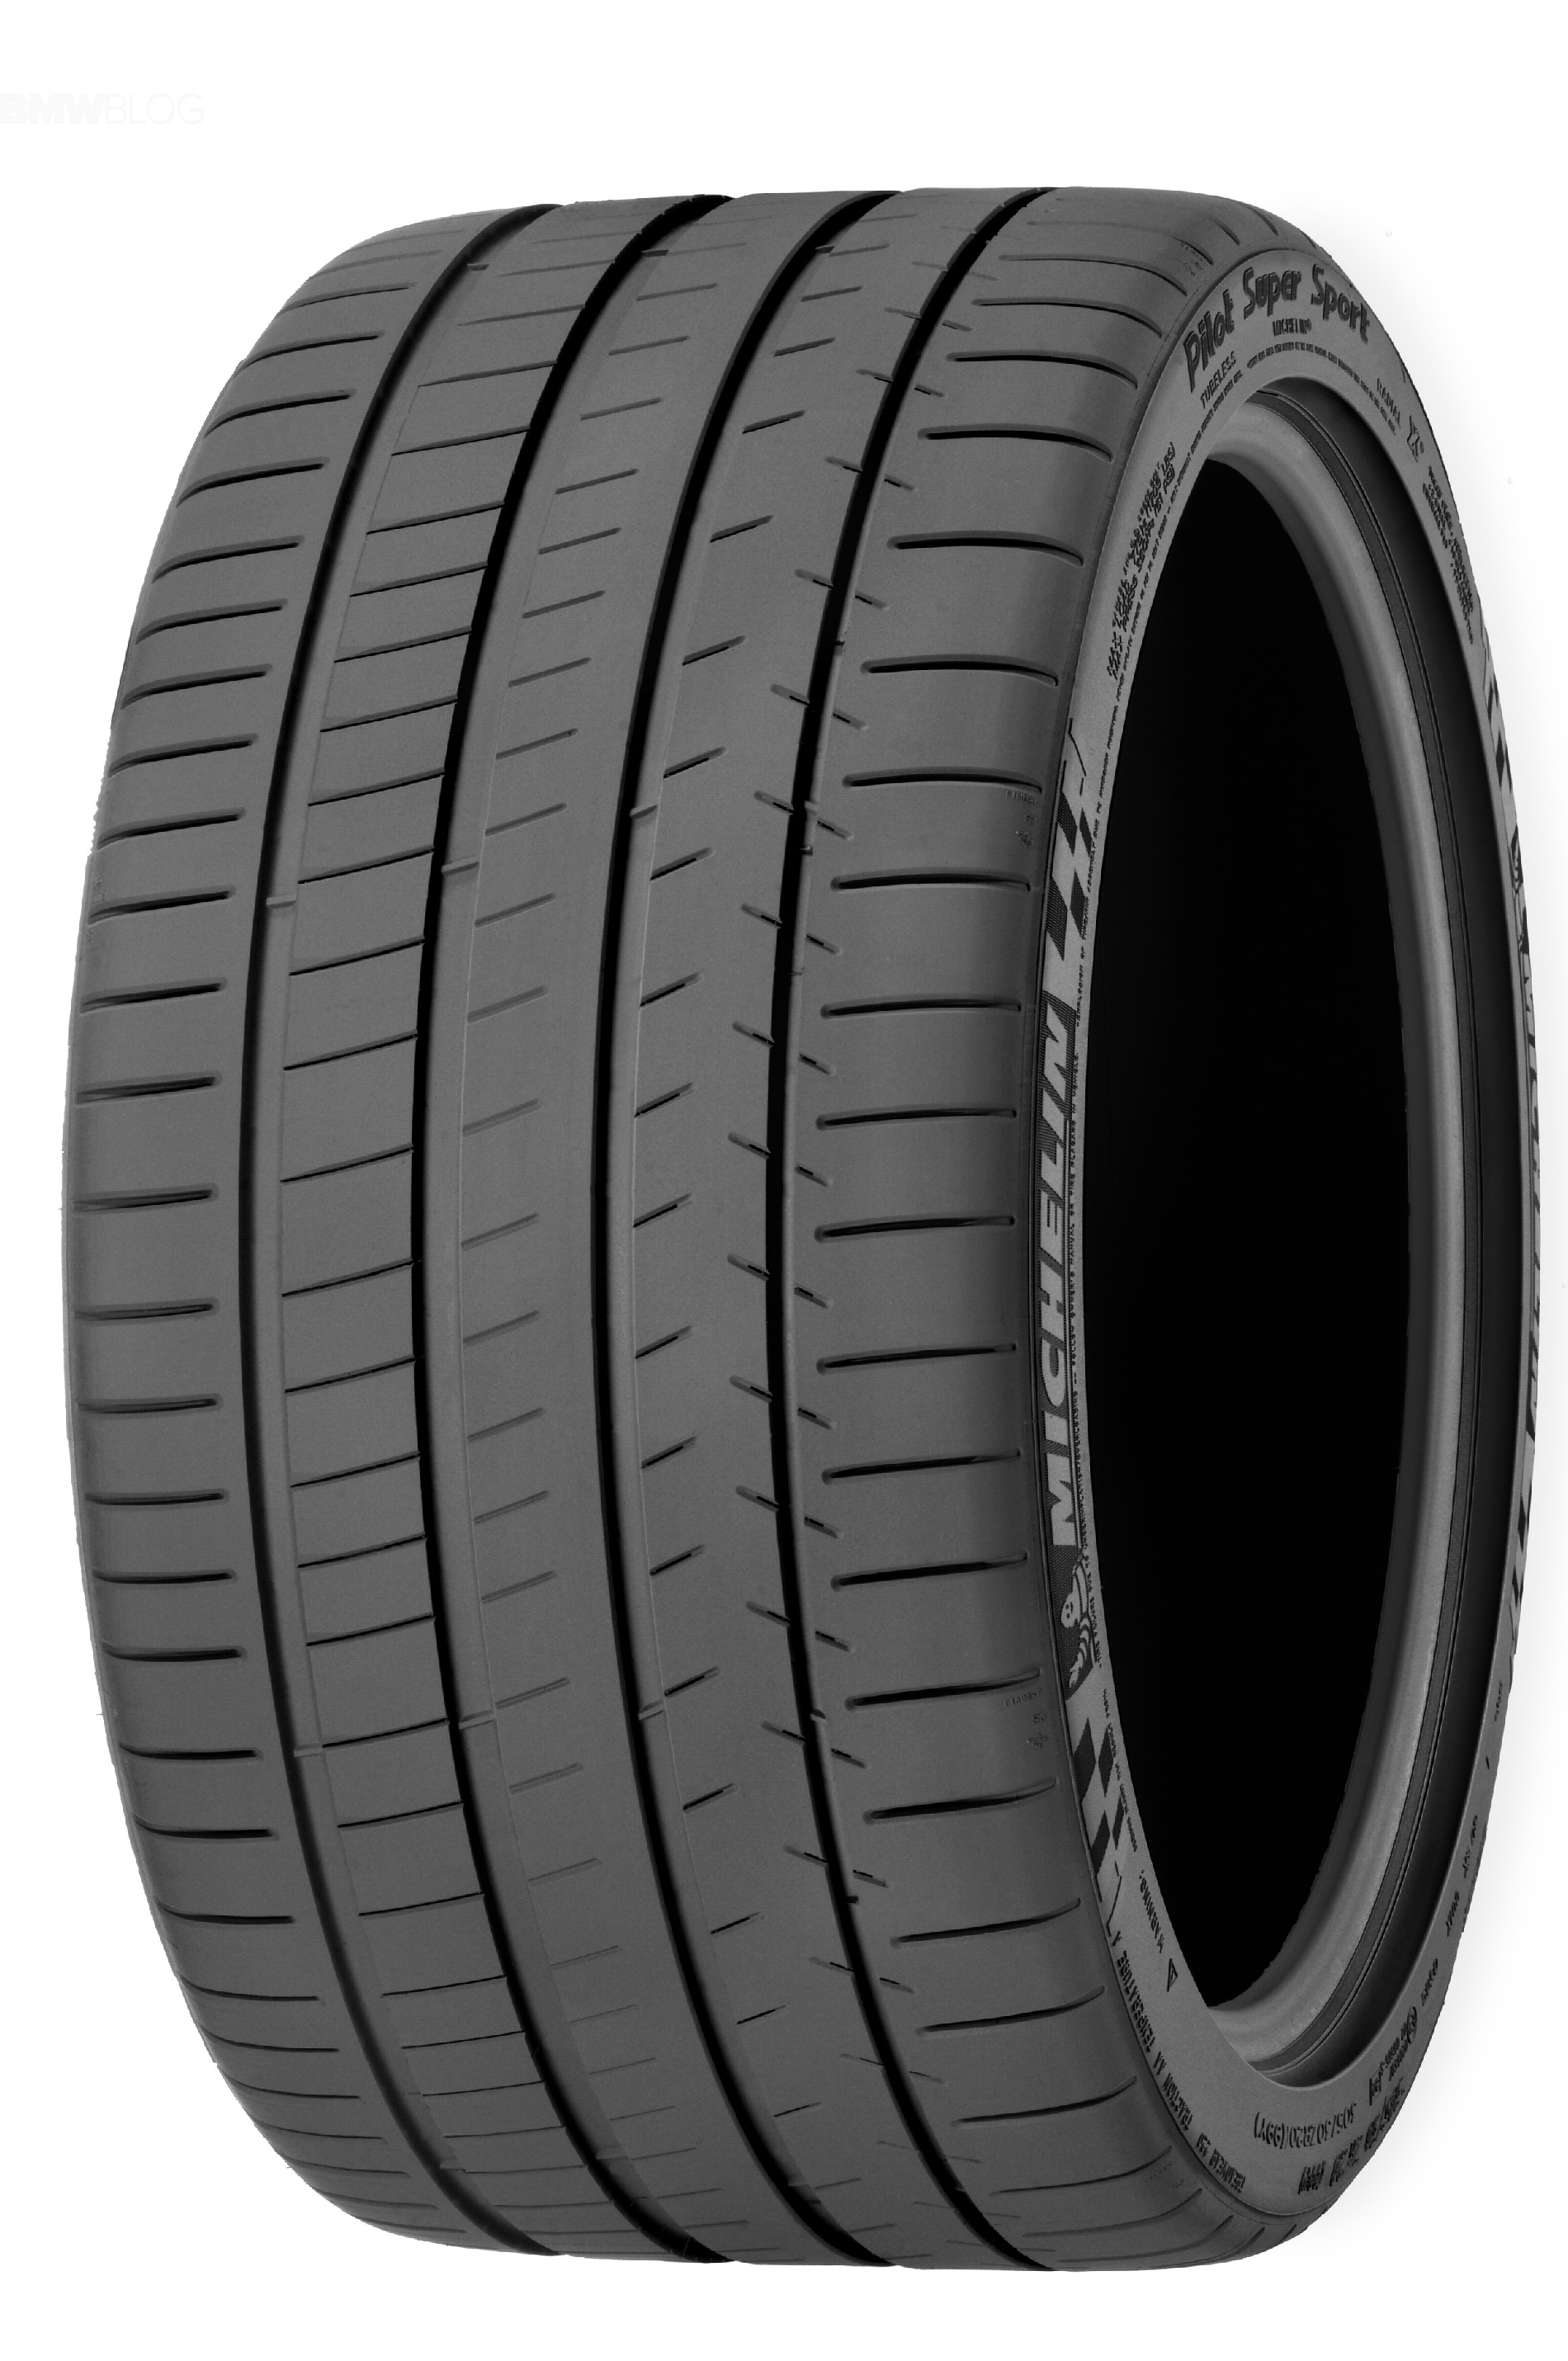 Летняя шина Michelin Pilot Super Sport 255/35 R19 96Y